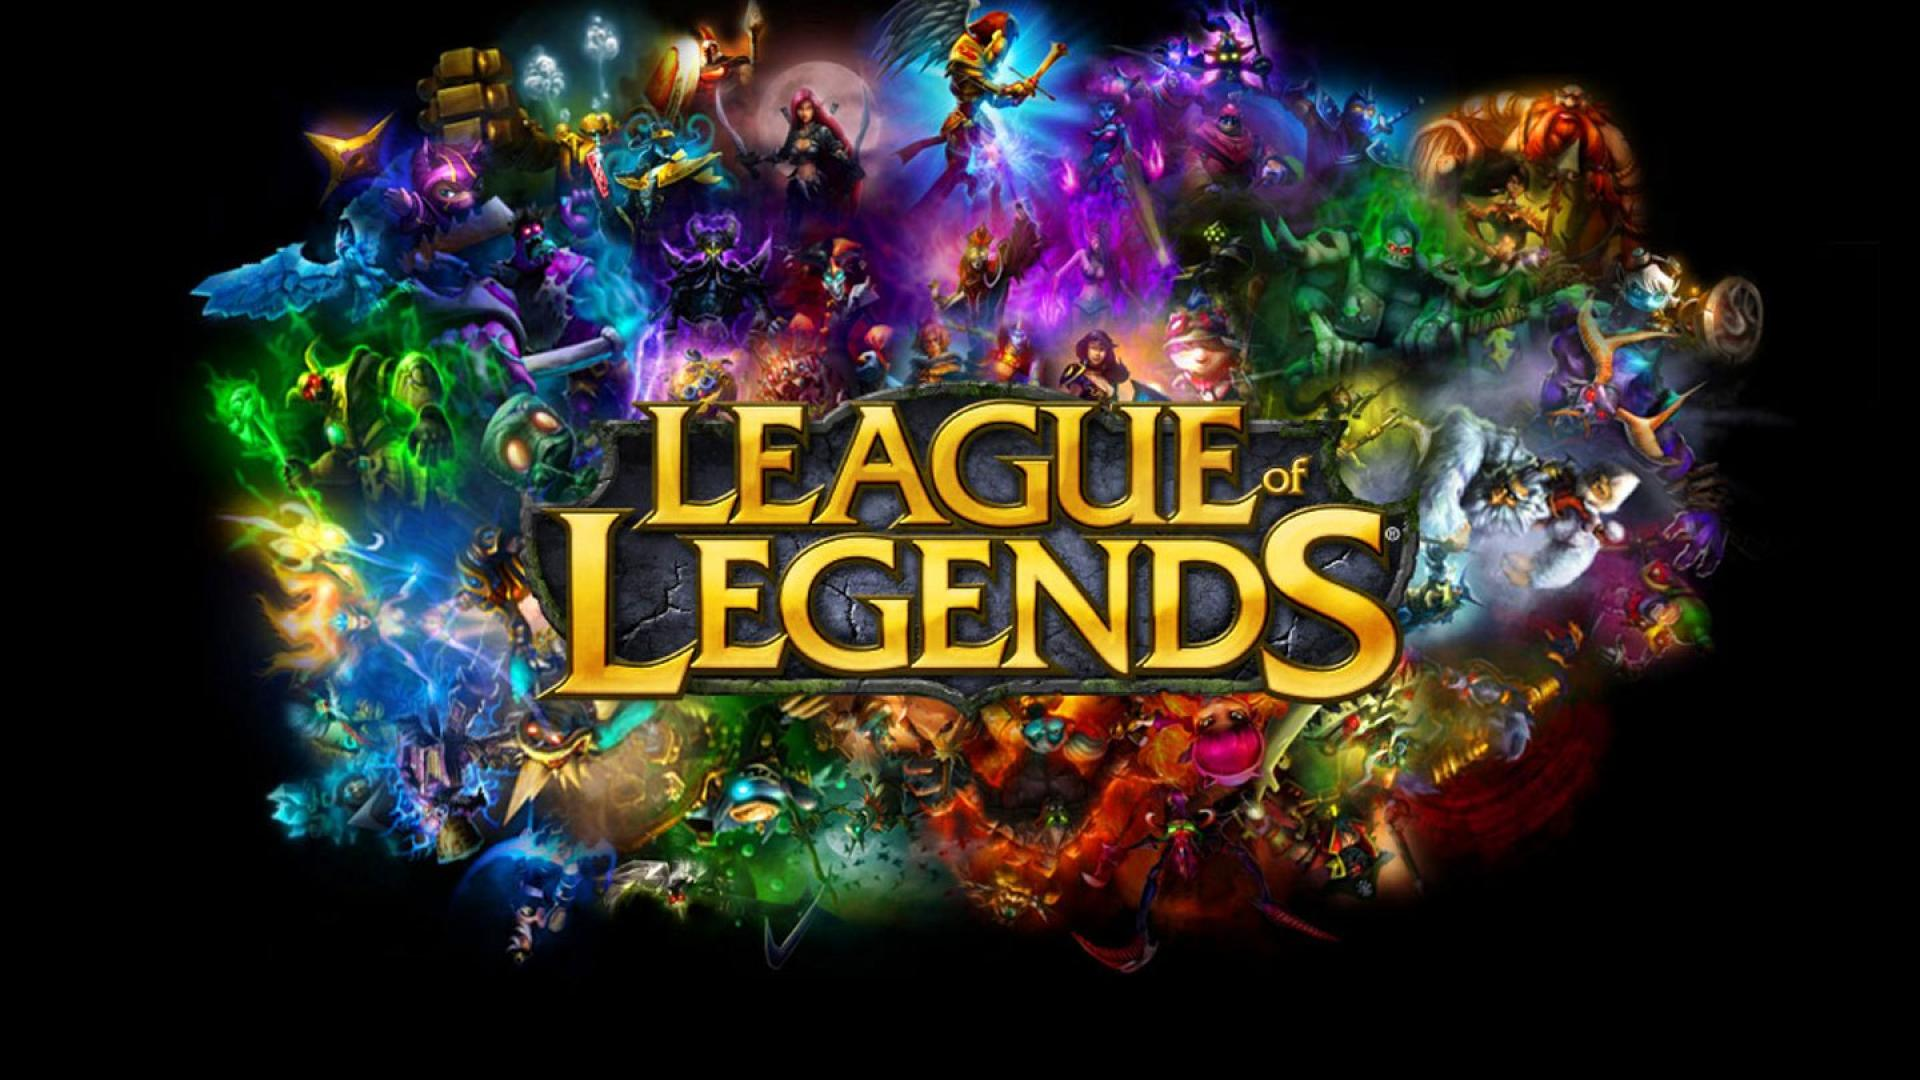 league of legends wallpaper A4